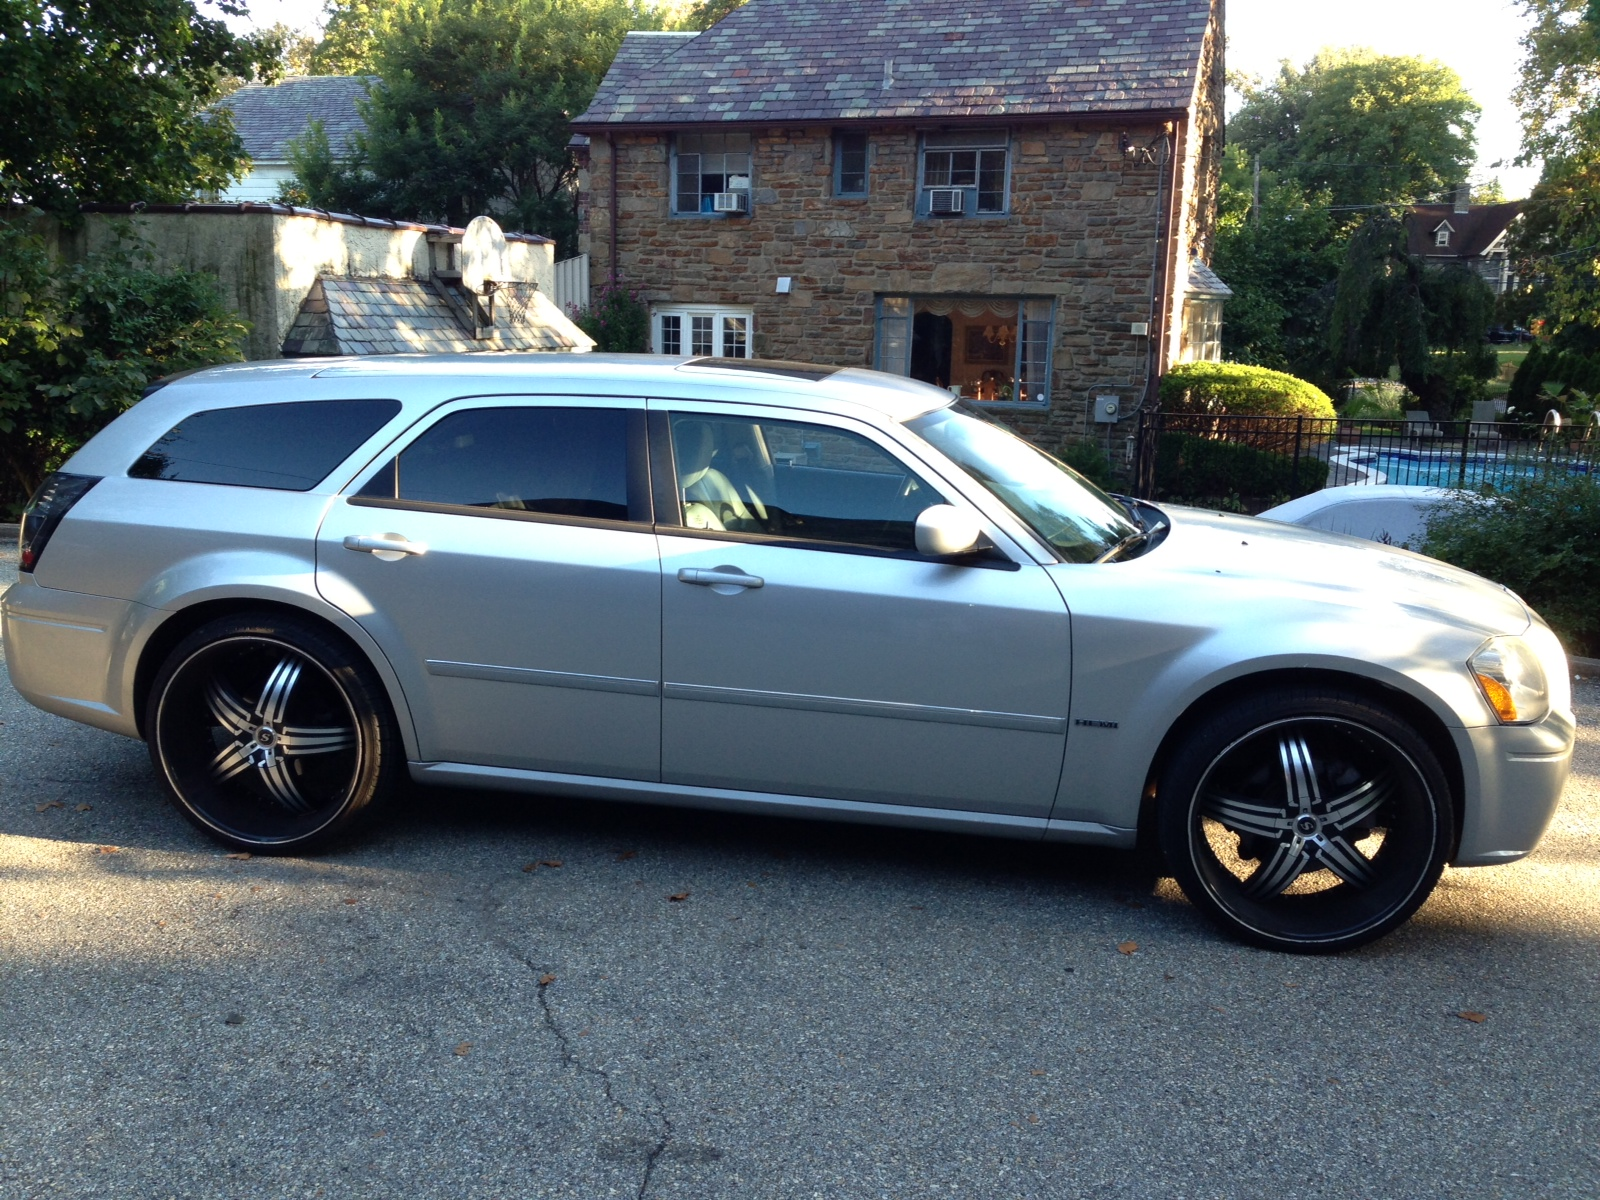 Magnum Rt Awd For Sale >> 2006 Dodge Magnum R/T AWD related infomation,specifications - WeiLi Automotive Network